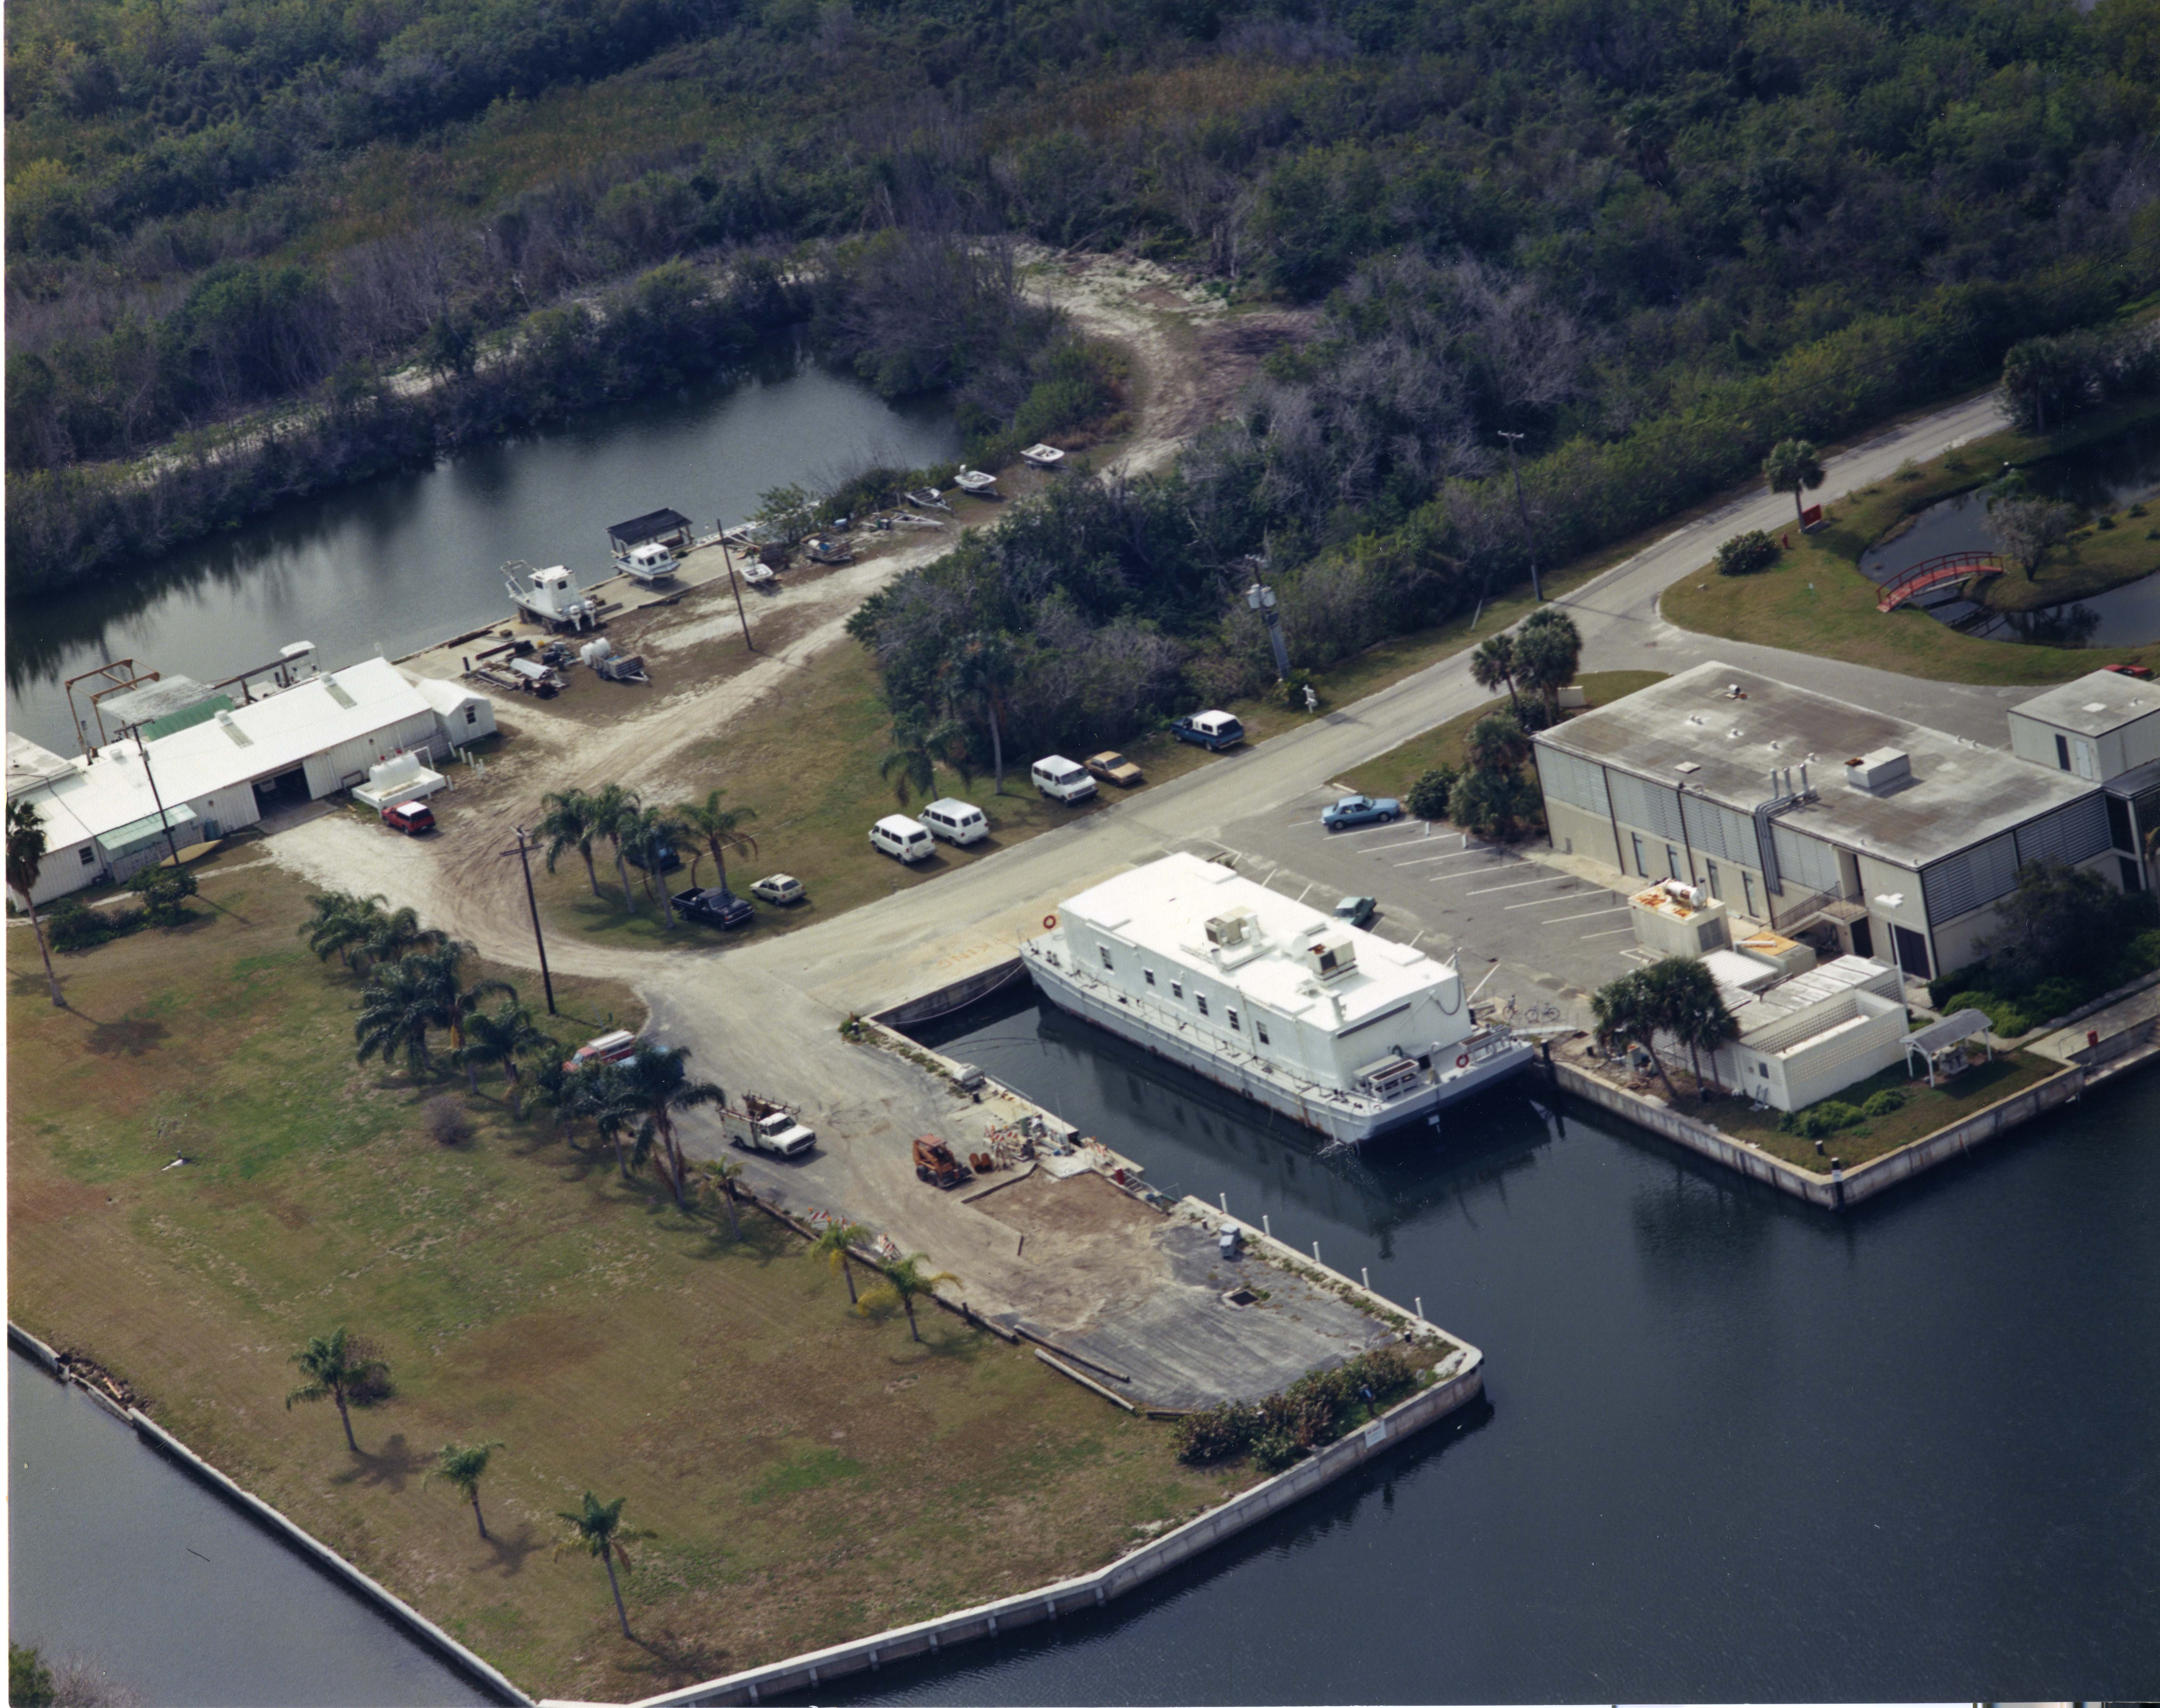 Aerial view of the Marine Station at Fort Pierce. It is right on the water. Palm trees are also visi